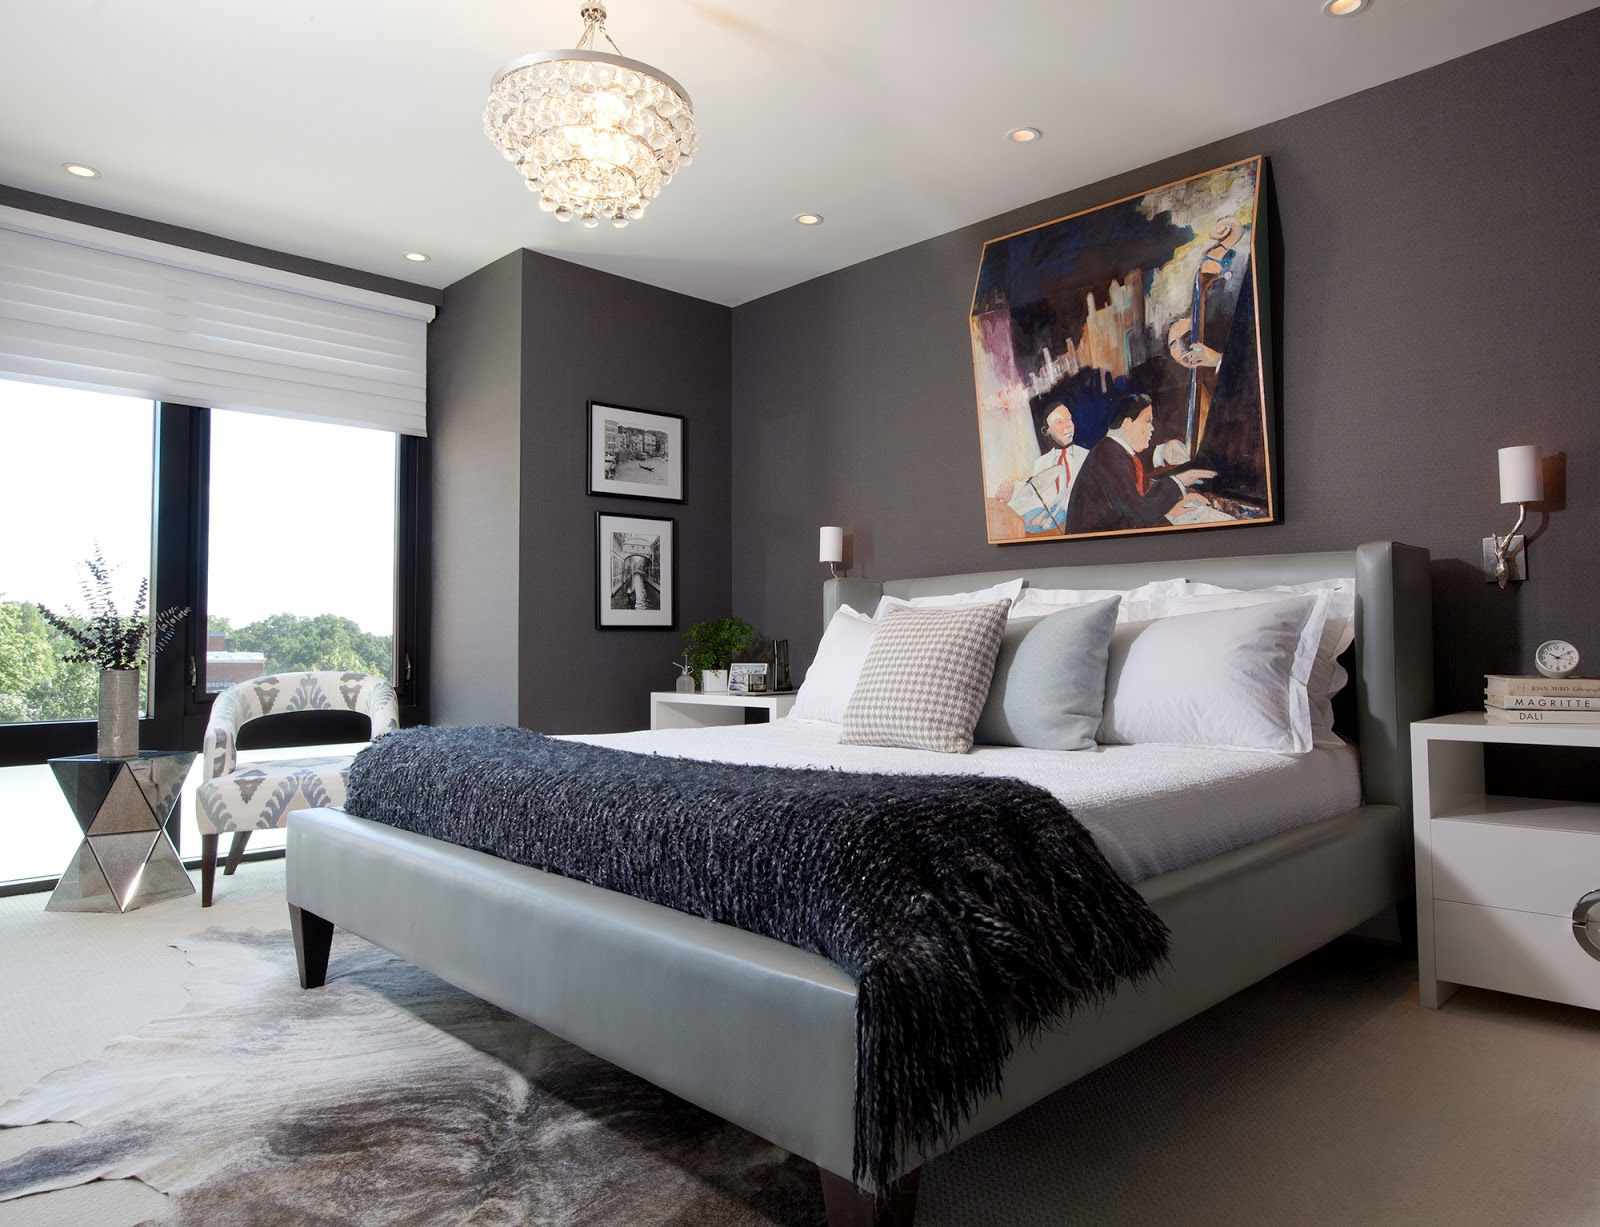 Top 50 Luxury Master Bedroom Designs  part 2 The 25 best master bedroom ideas on Pinterest Modern